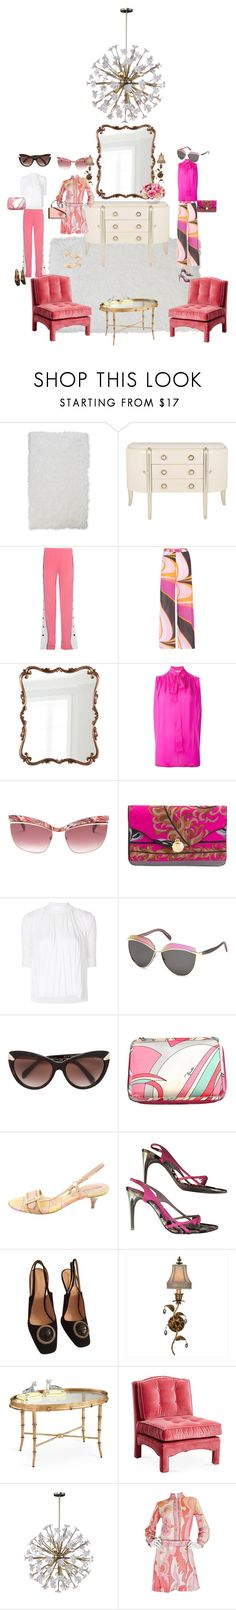 """""""Out on the town in Pucci"""" by shellygregory ❤ liked on Polyvore featuring Home Dynamix, Emilio Pucci, Fine Art Lamps, Chelsea House and Golden Lighting"""